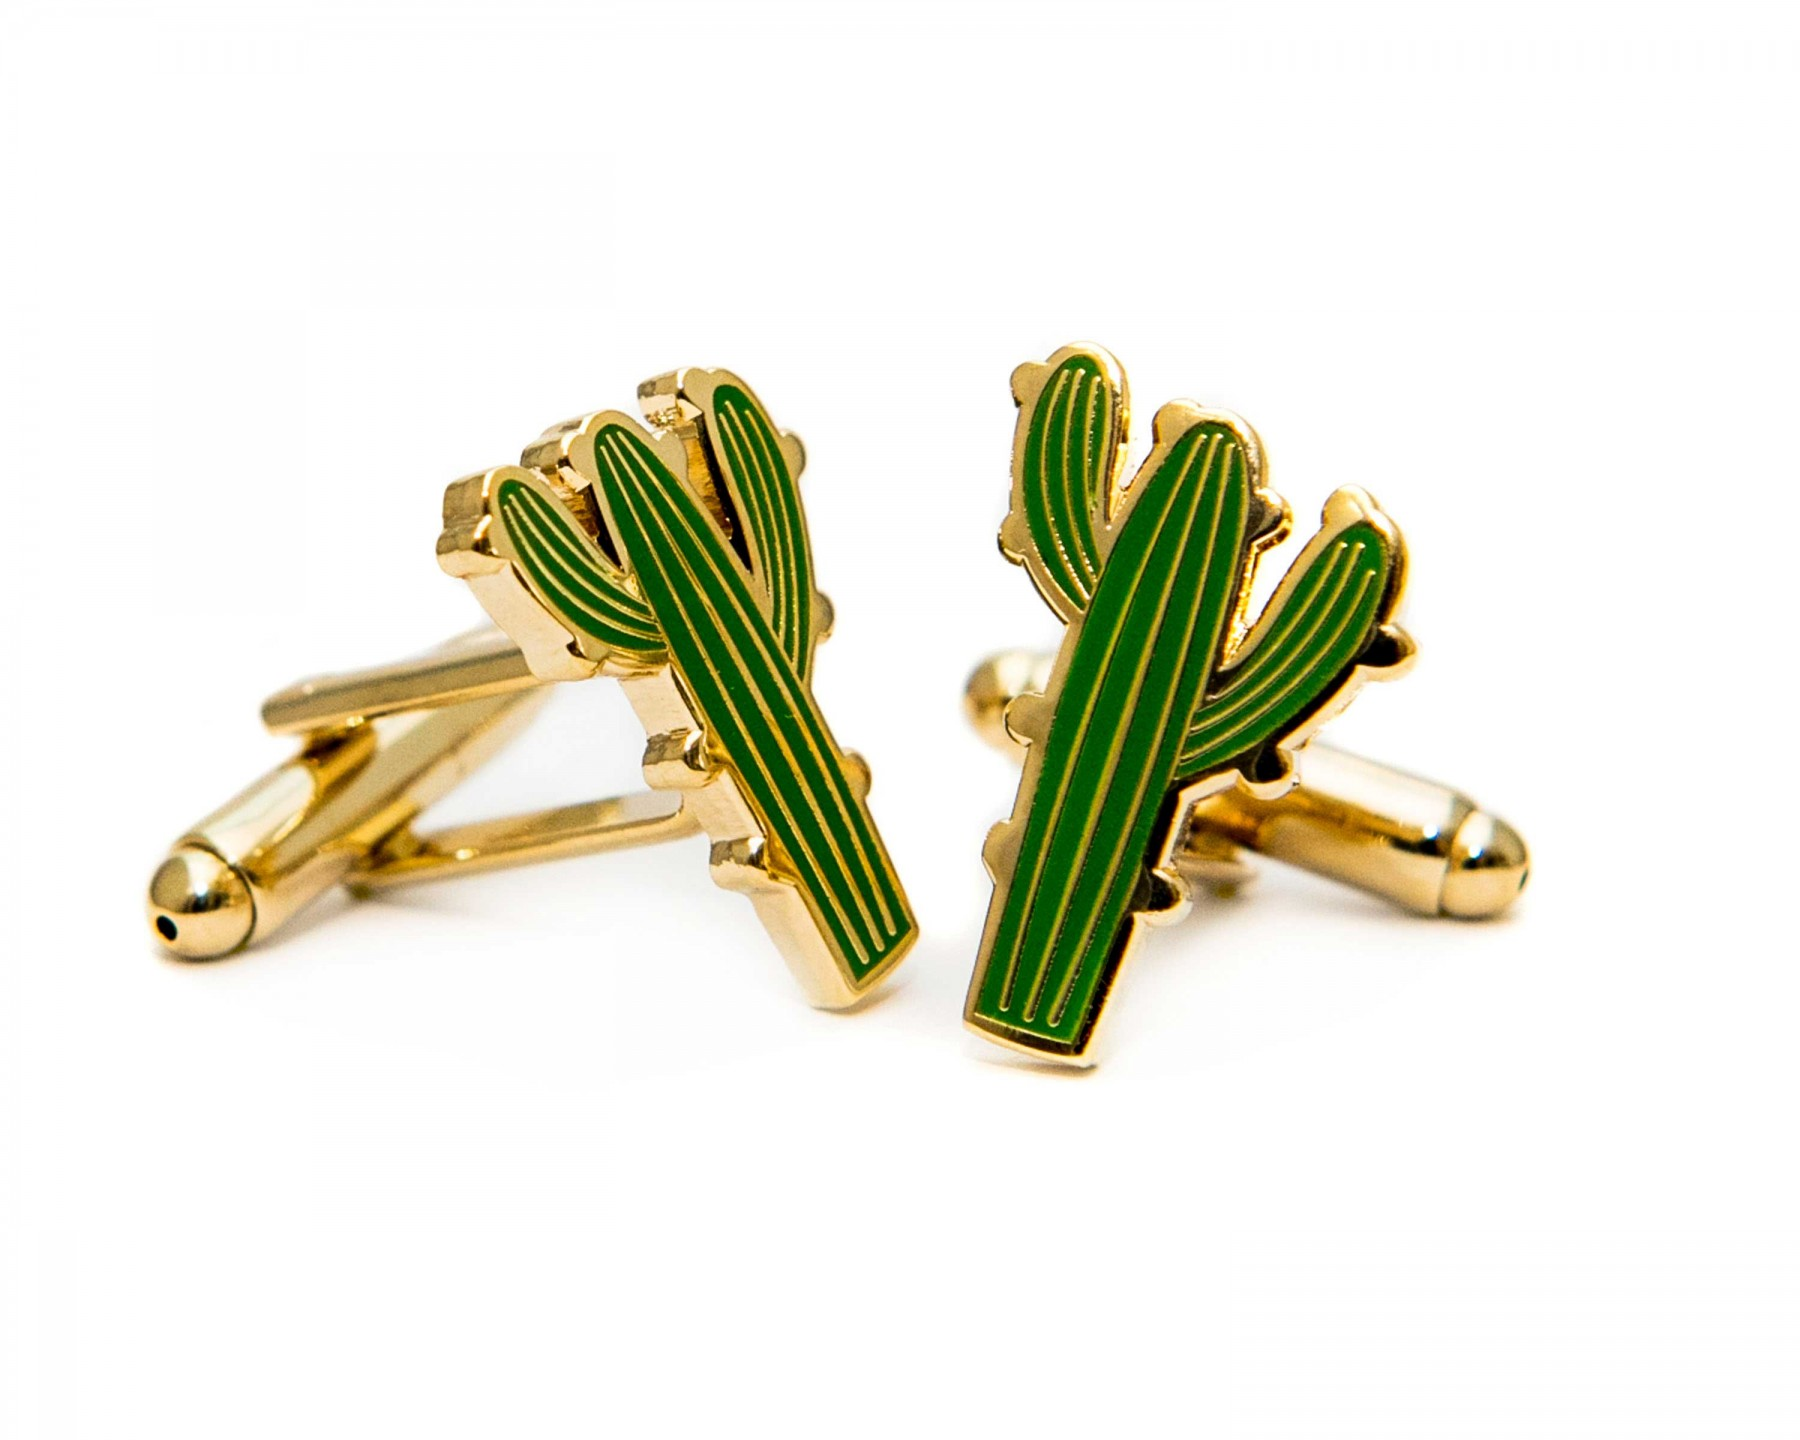 Cacti Cufflinks by Acorn and Will